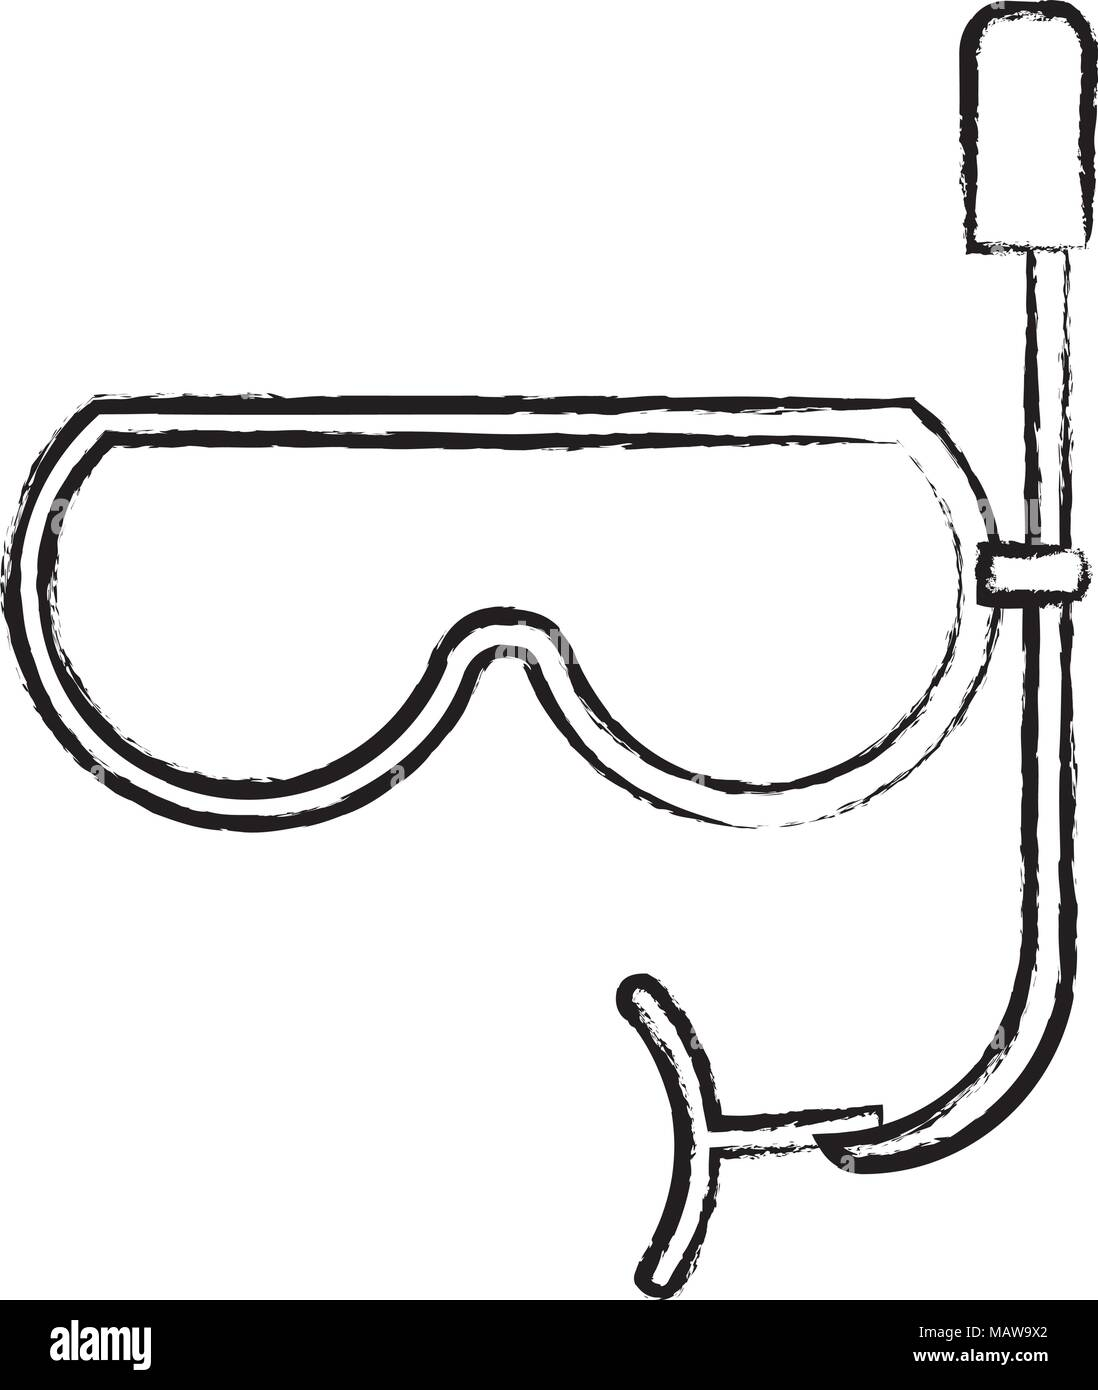 sketch of snorkel mask icon over white background, vector illustration - Stock Vector